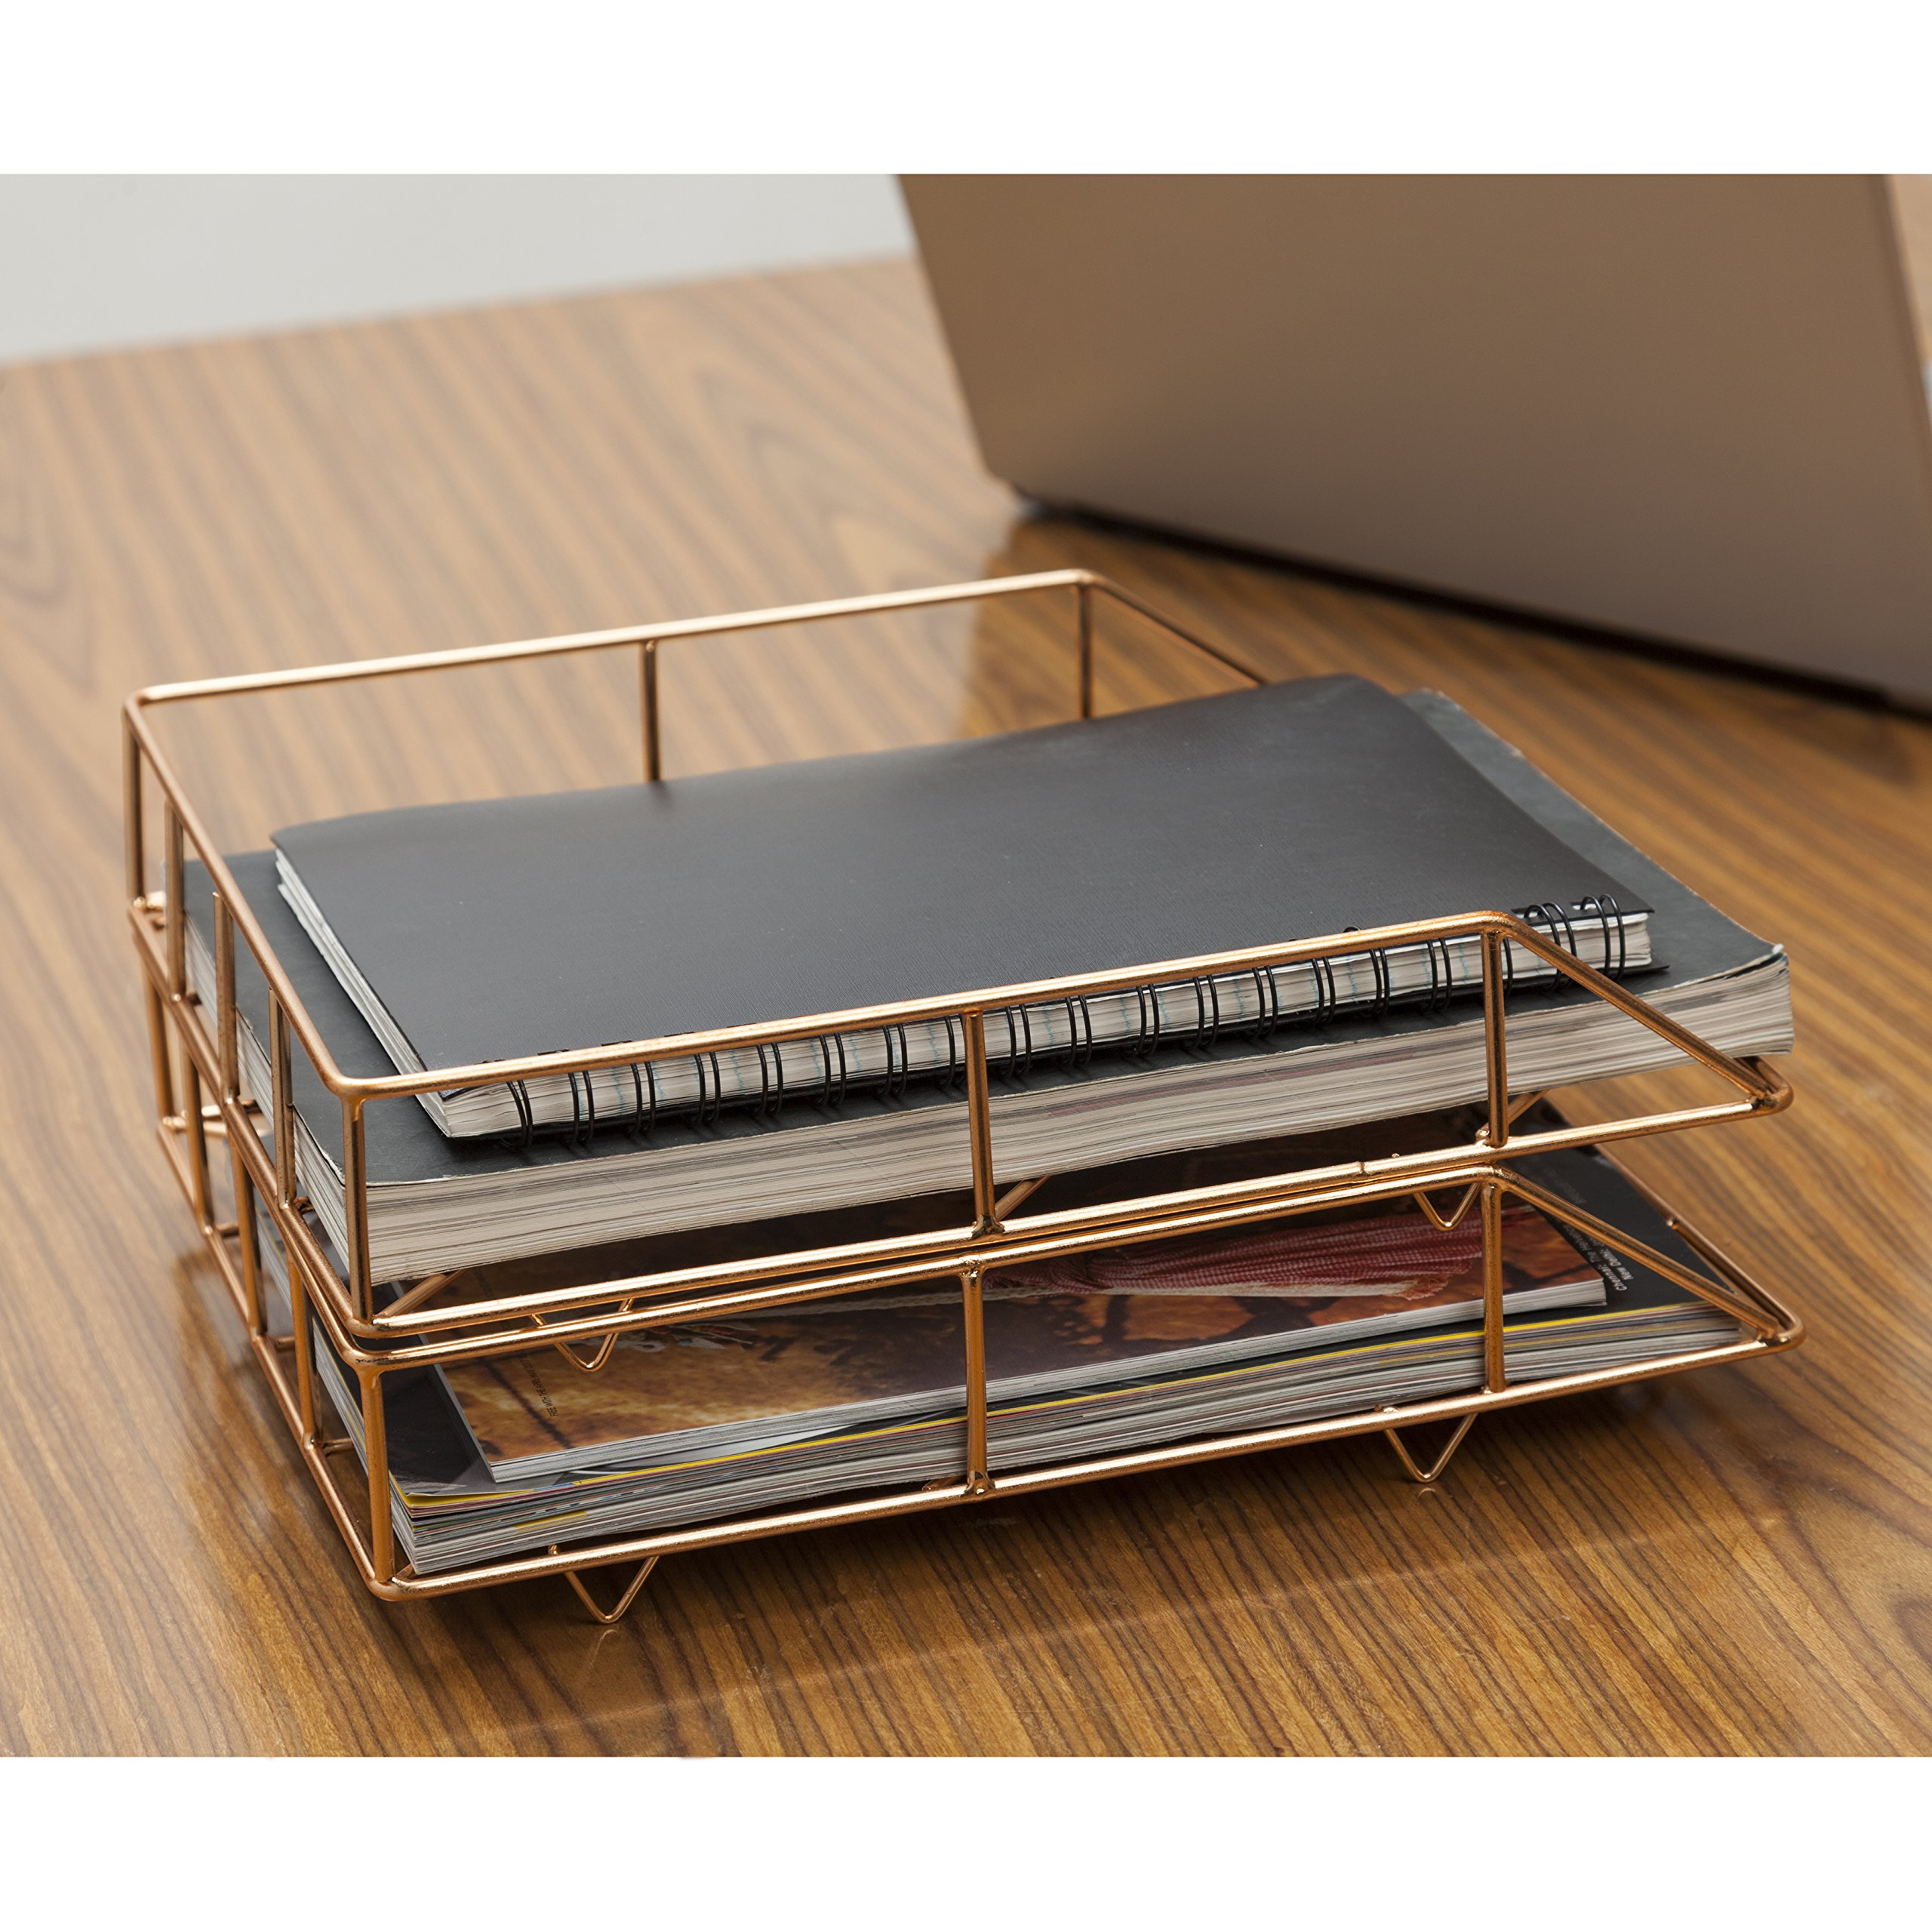 GoCraft Stack Flat File Trays - Copper Metal Wire Horizontal File Folder/ Letter Organizer